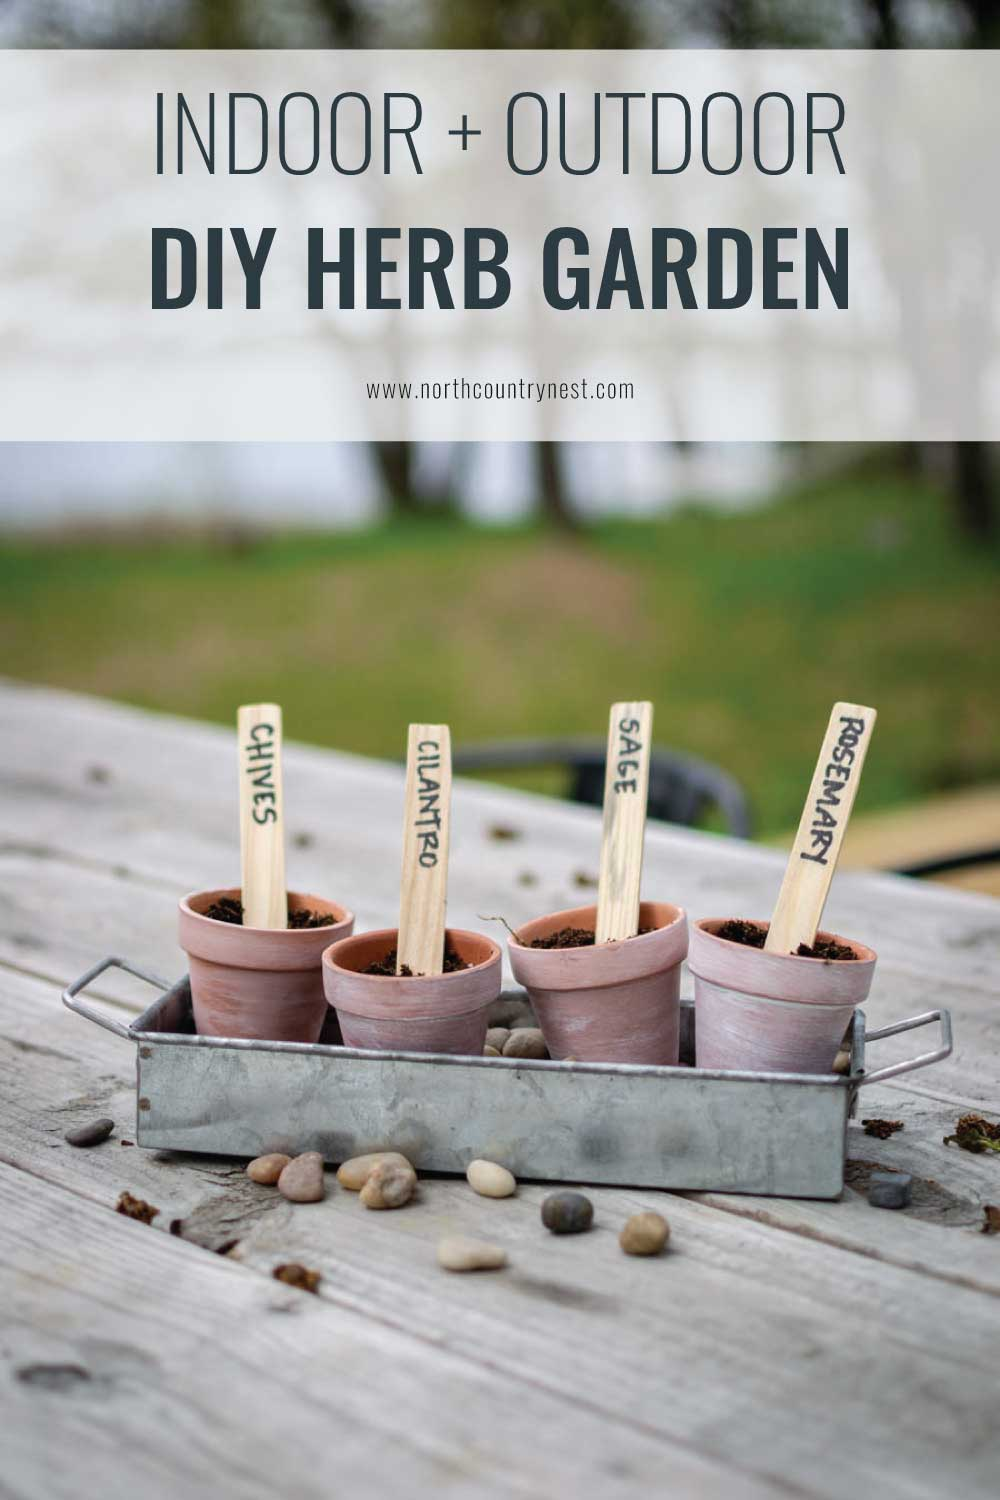 All you need are terracotta planters and a galvanized tray to make this industrial DIY herb garden that's suitable for indoors or out! | DIY container herb garden | North Country Nest #northcountrynest #herbgaren #DIY #containerherbgarden #indoorherbgarden